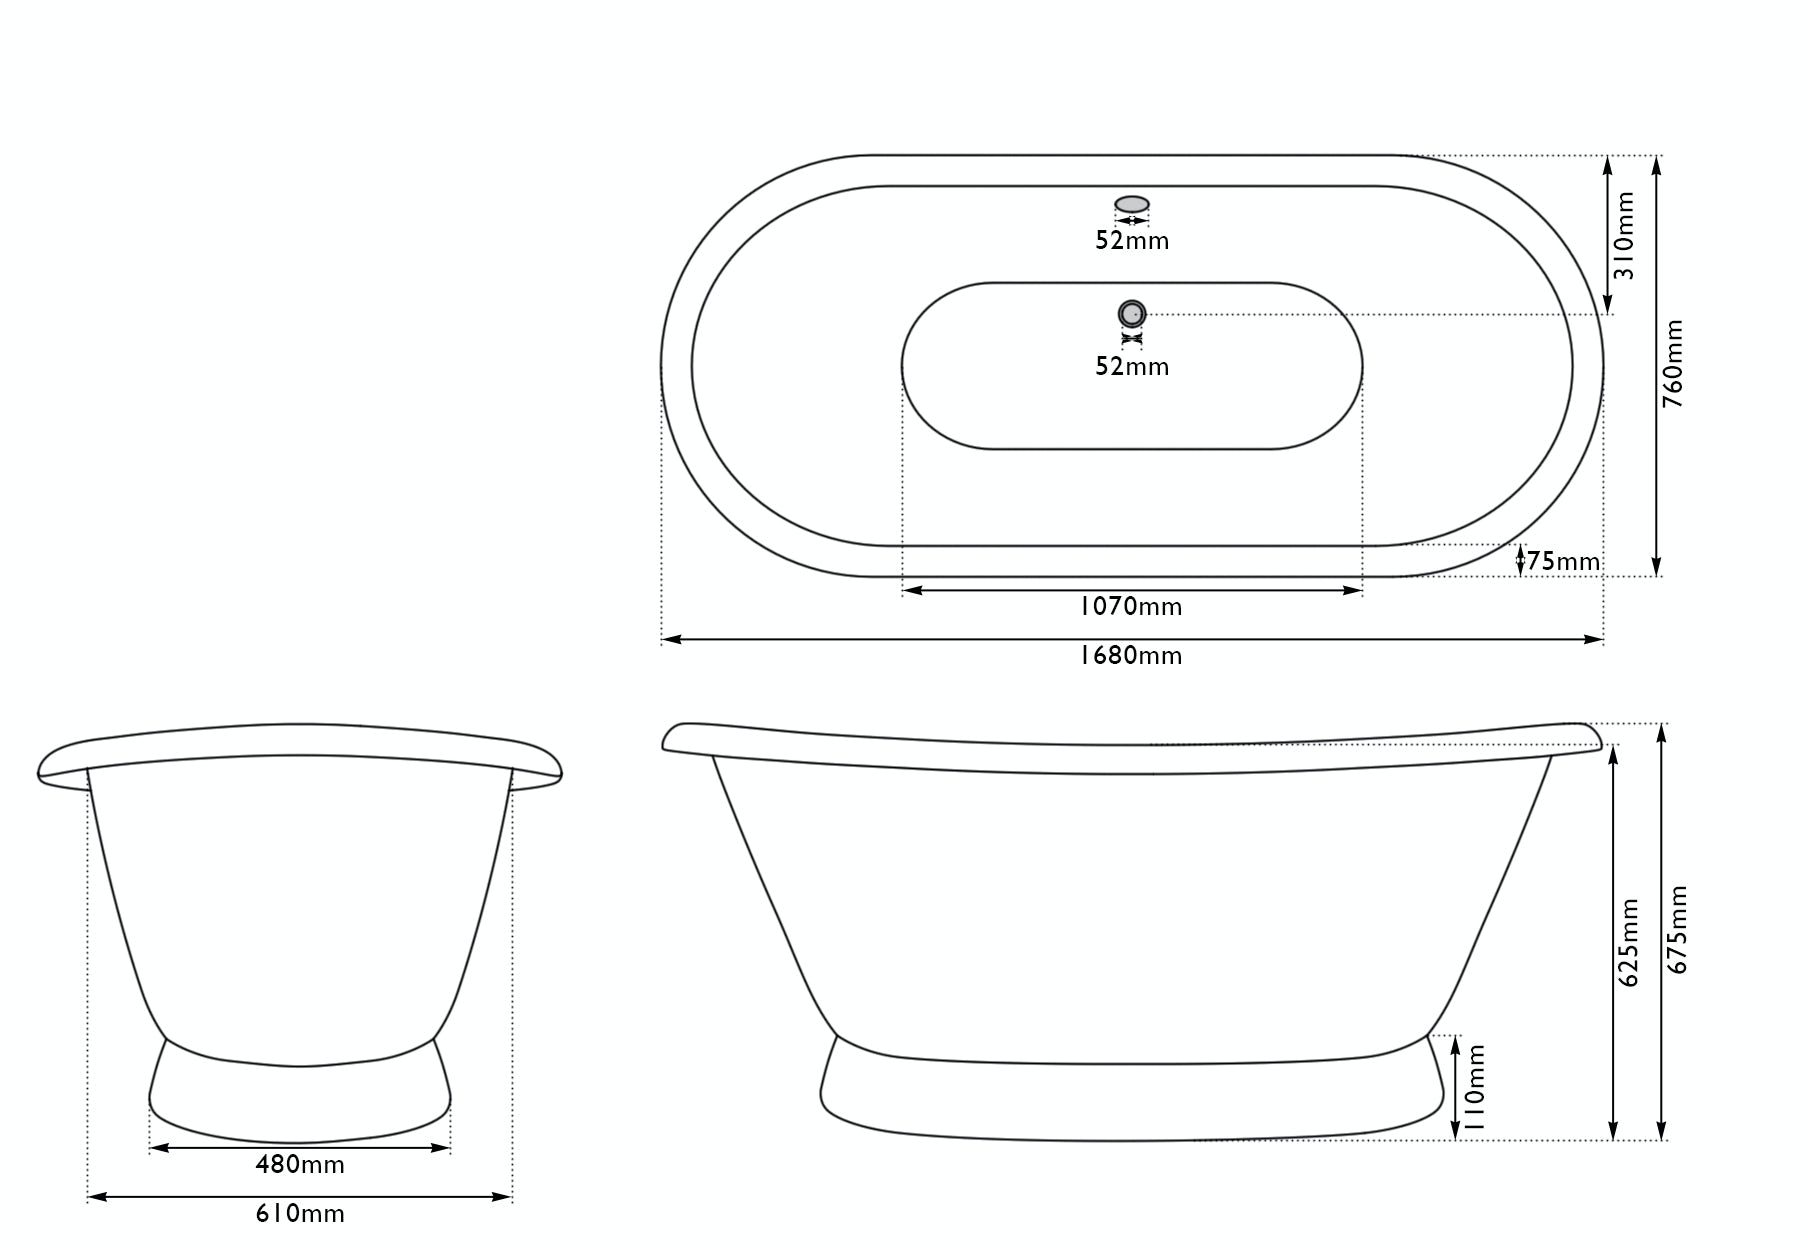 Dimensions for The Bath Co. Stirling misted green cast iron bath